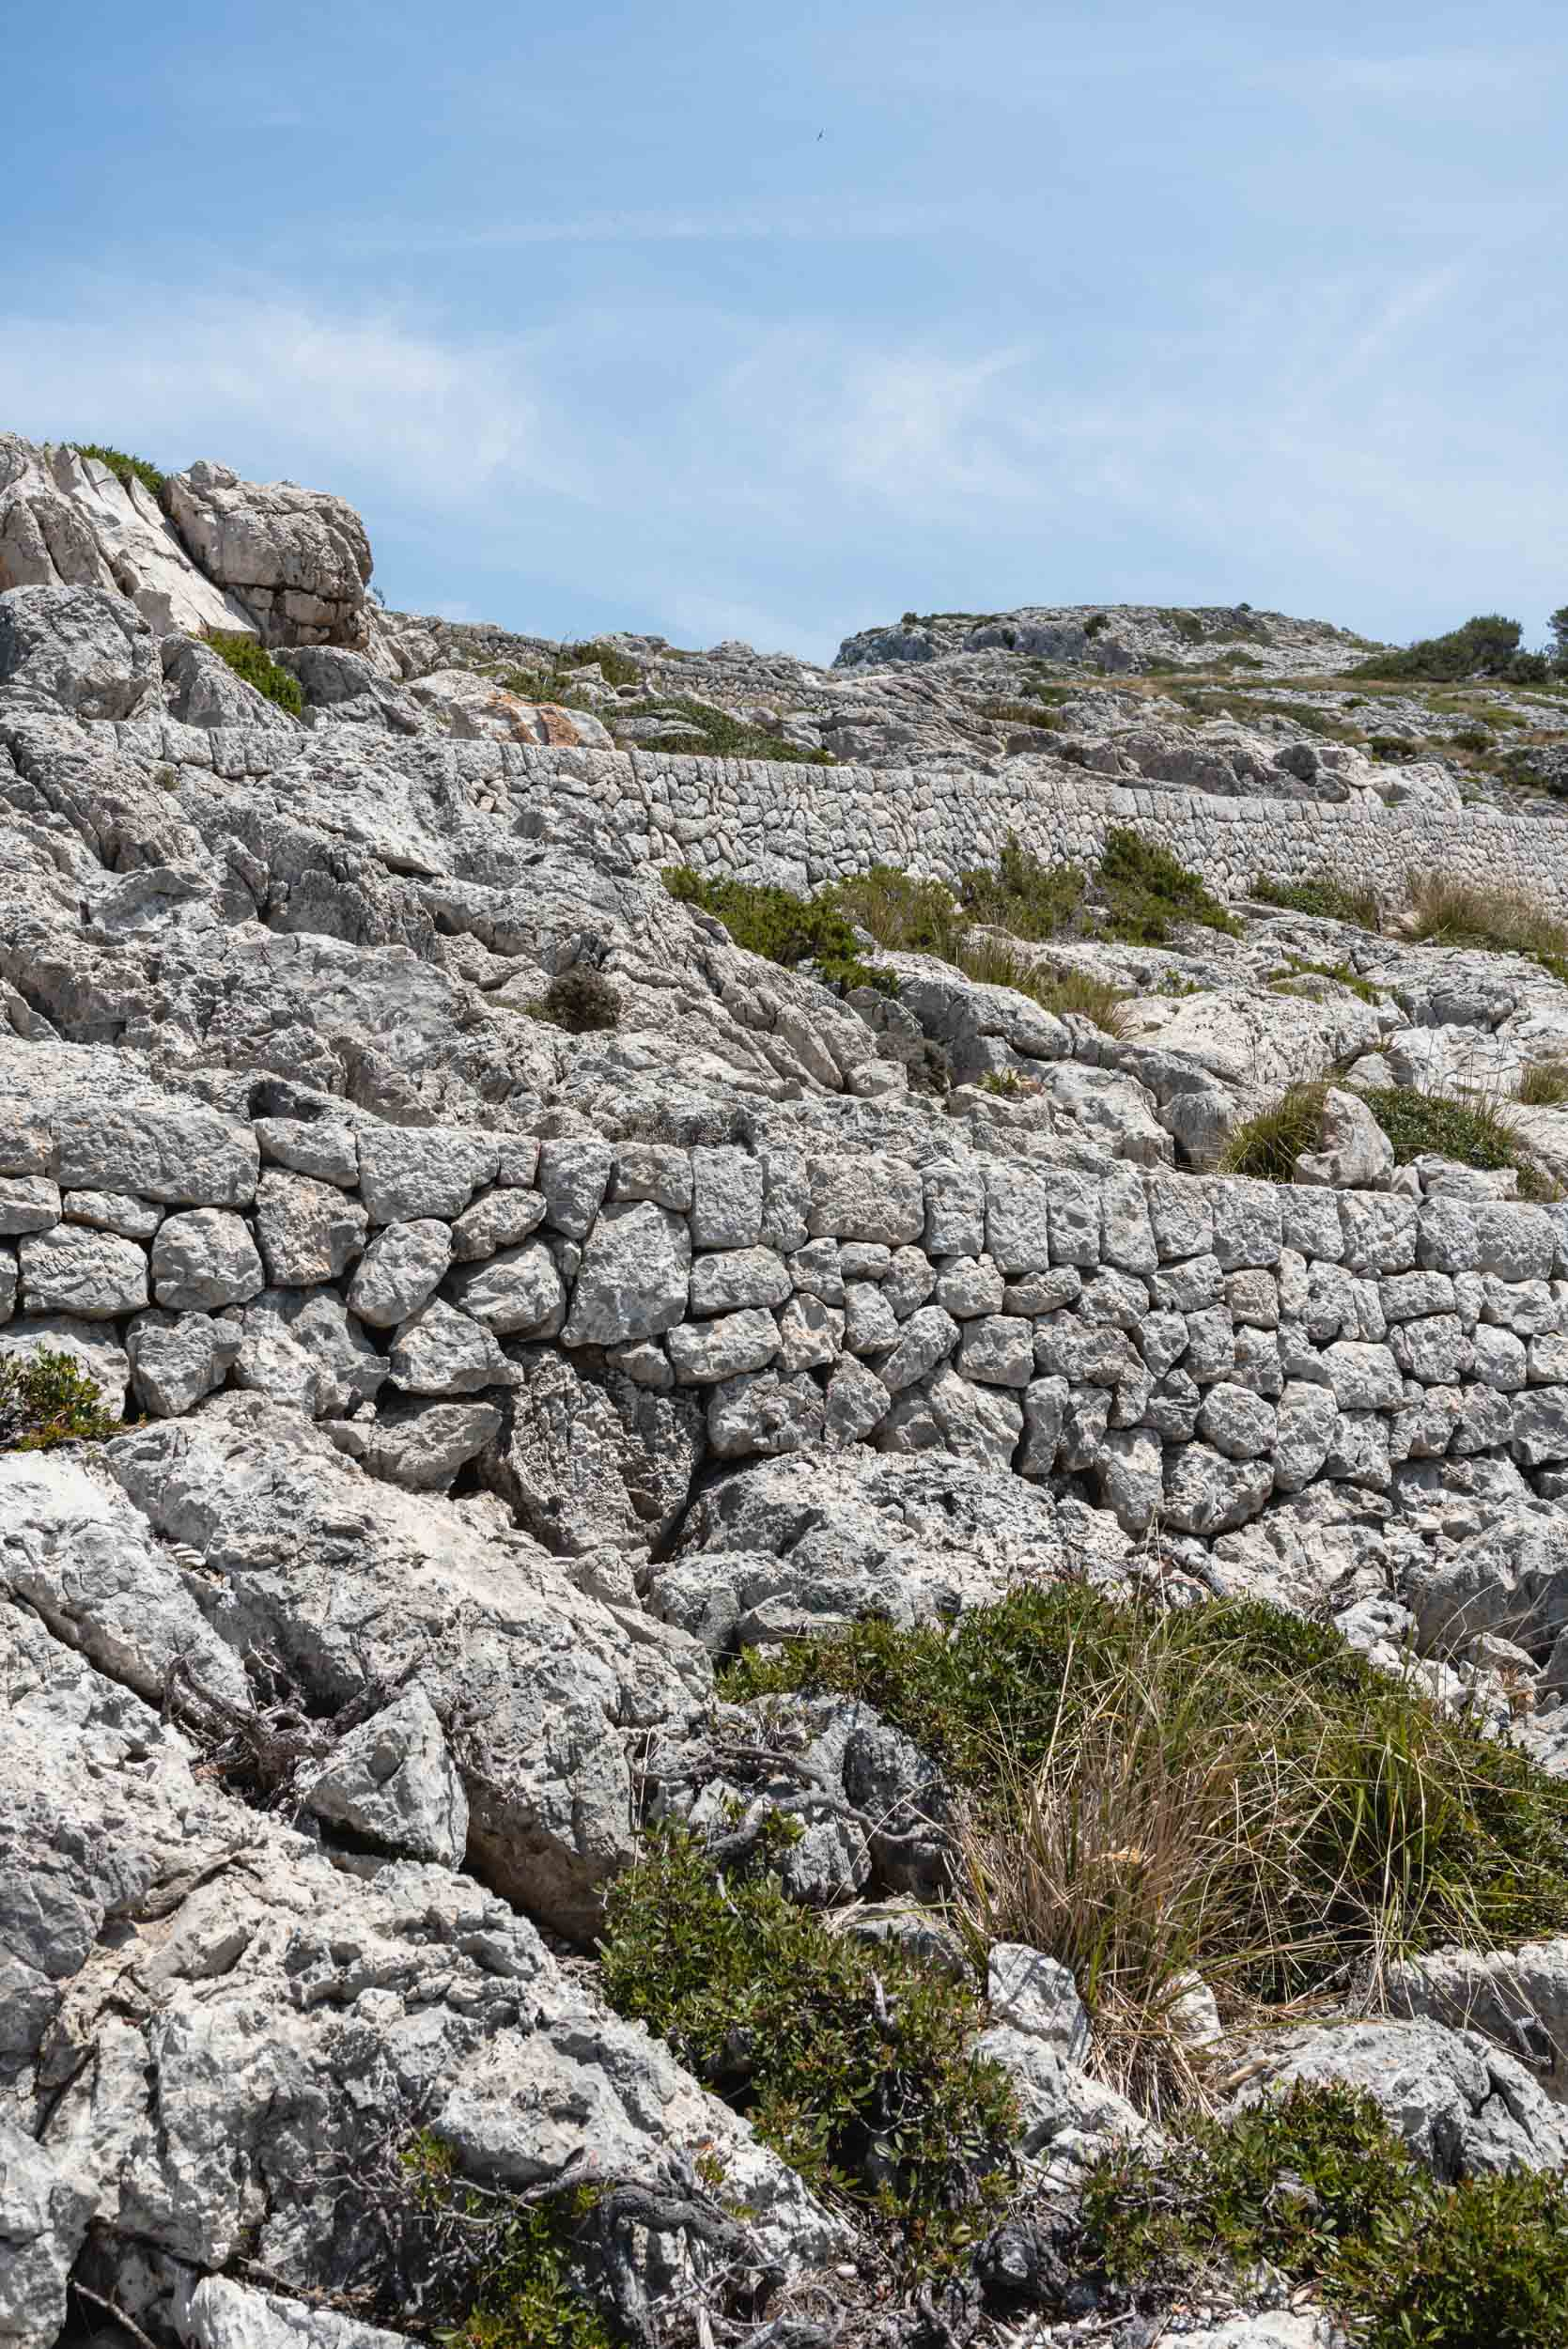 Textured rocks at Mirador lookout Mallorca